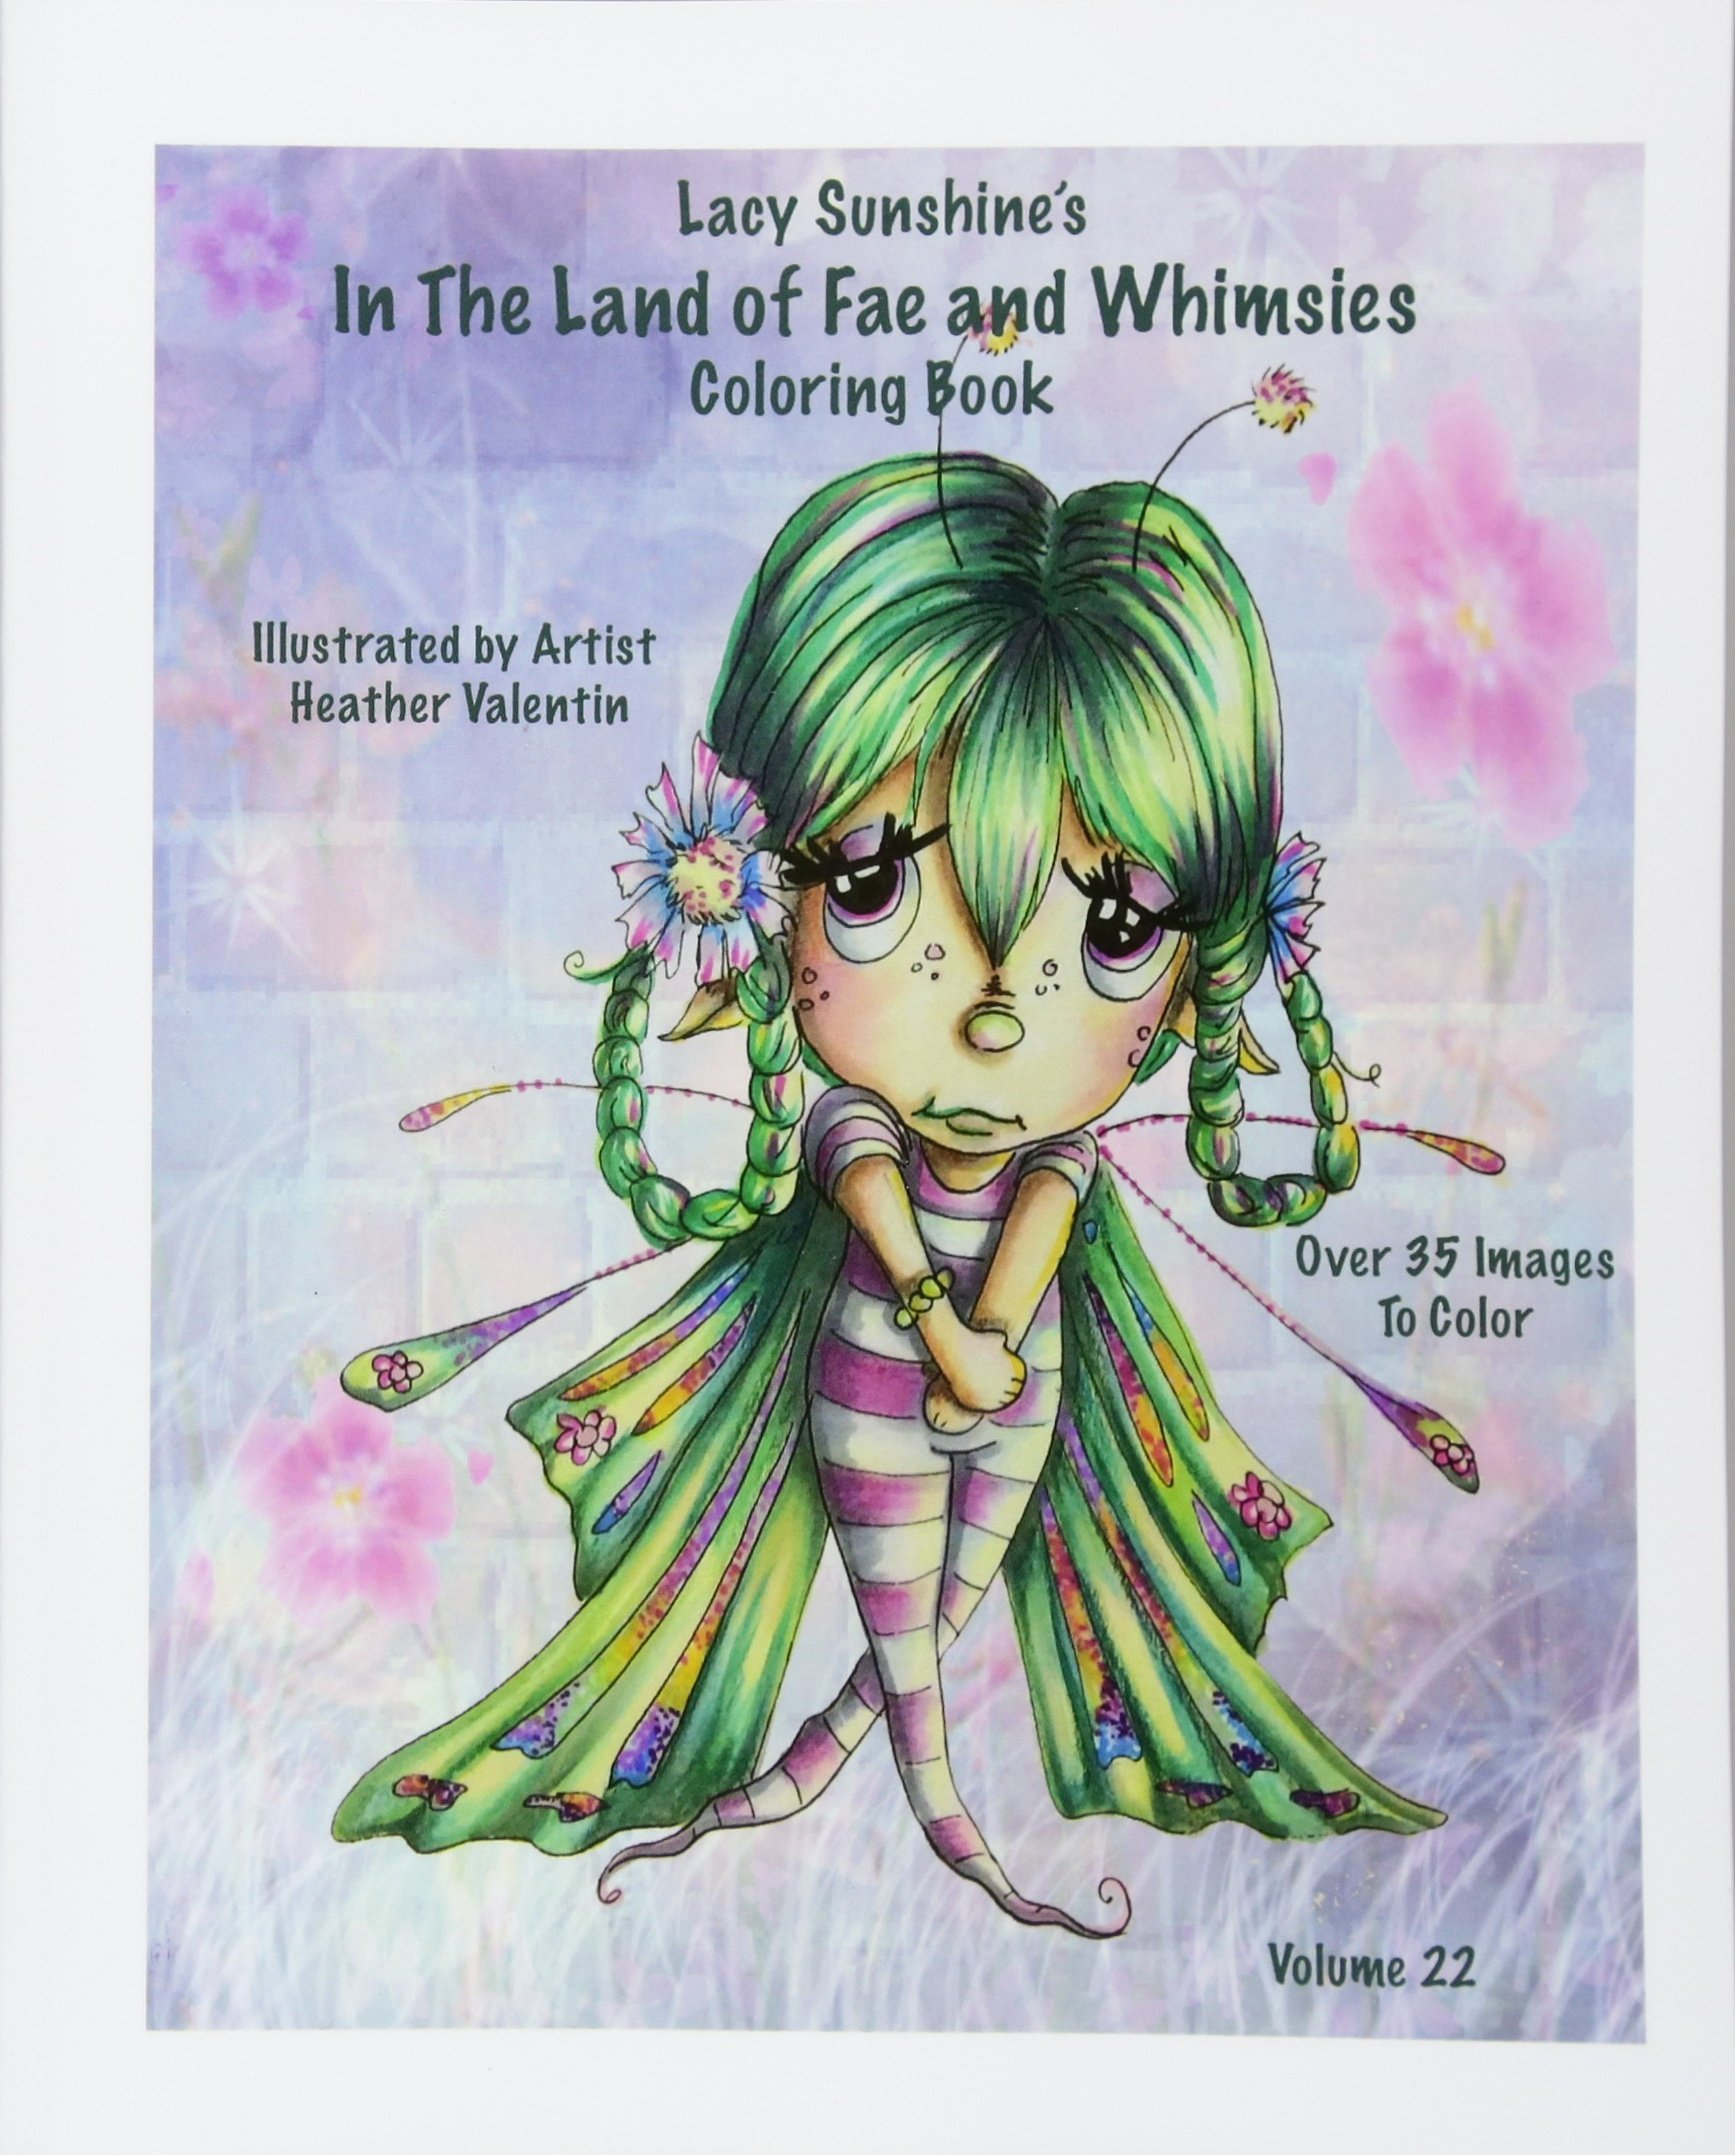 Lacy Sunshine's In The Land Of Fae and Whimsies Coloring Book Volume 22: Big Eyed Fairies Whimsical Sprites Coloring For All Ages (Lacy Sunshine Coloring Books)